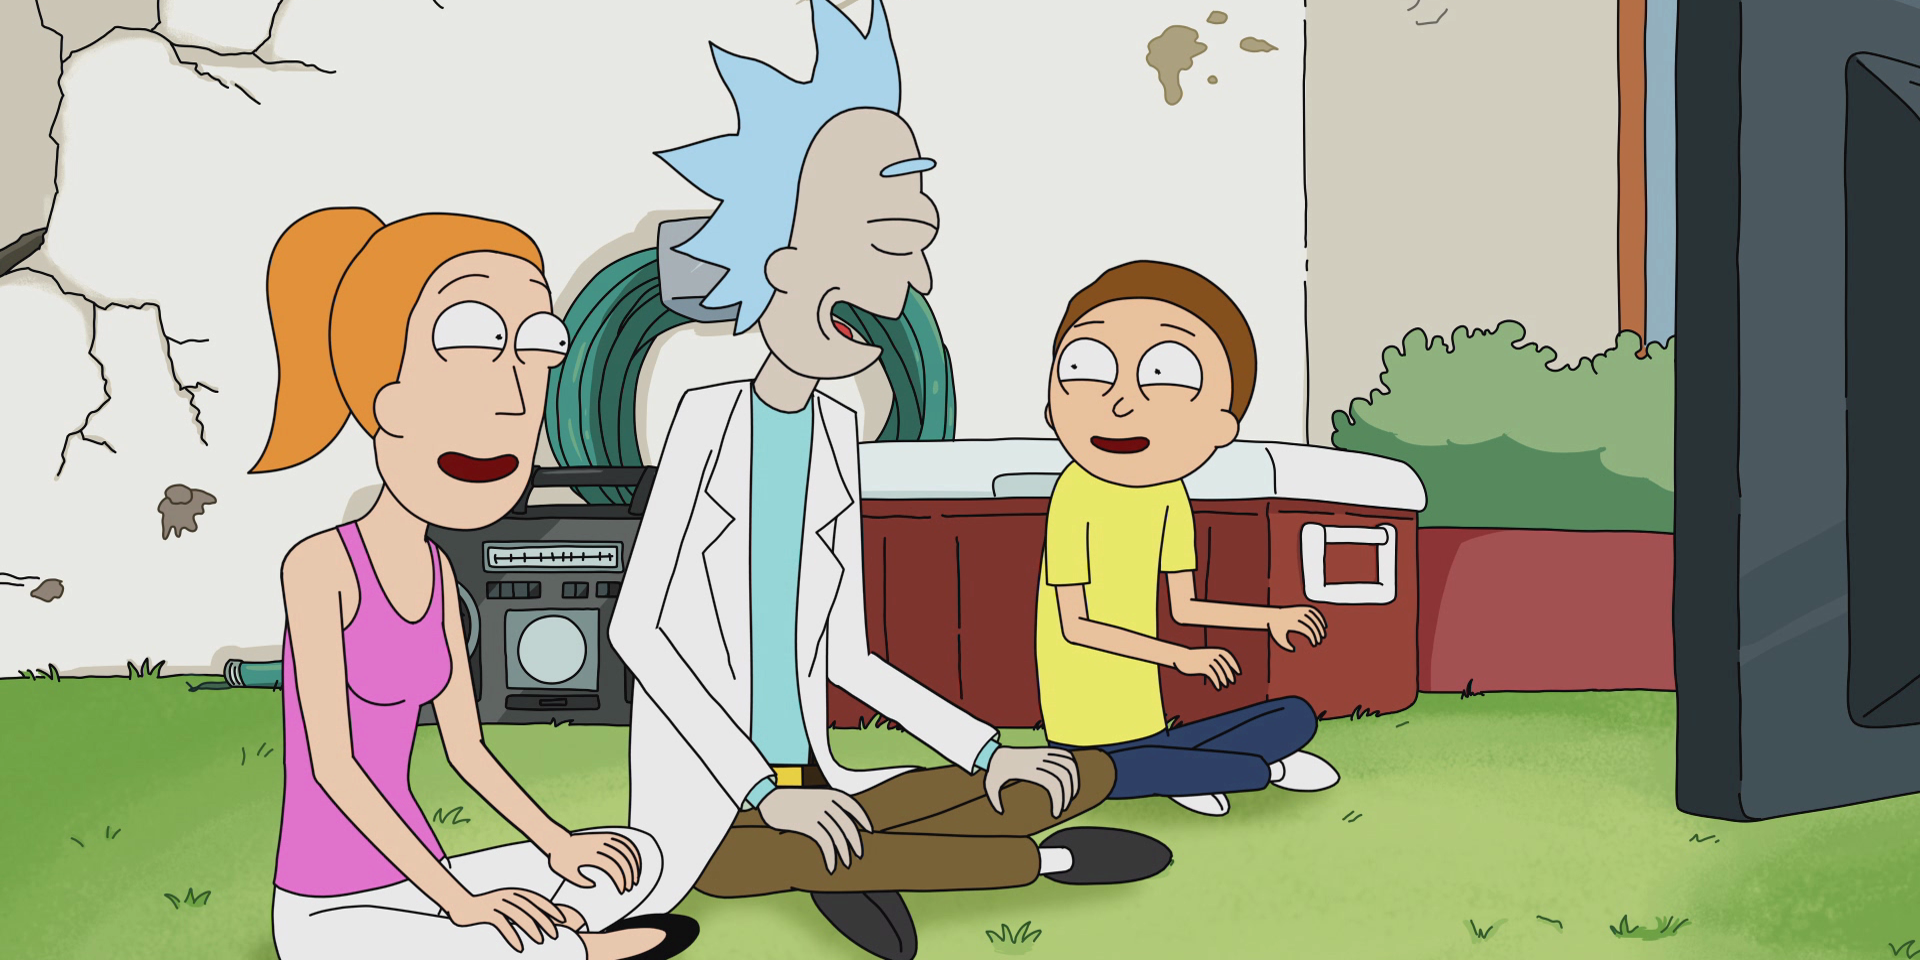 'Rick and Morty' Season 4 Release Date, Trailer, and Production Updates